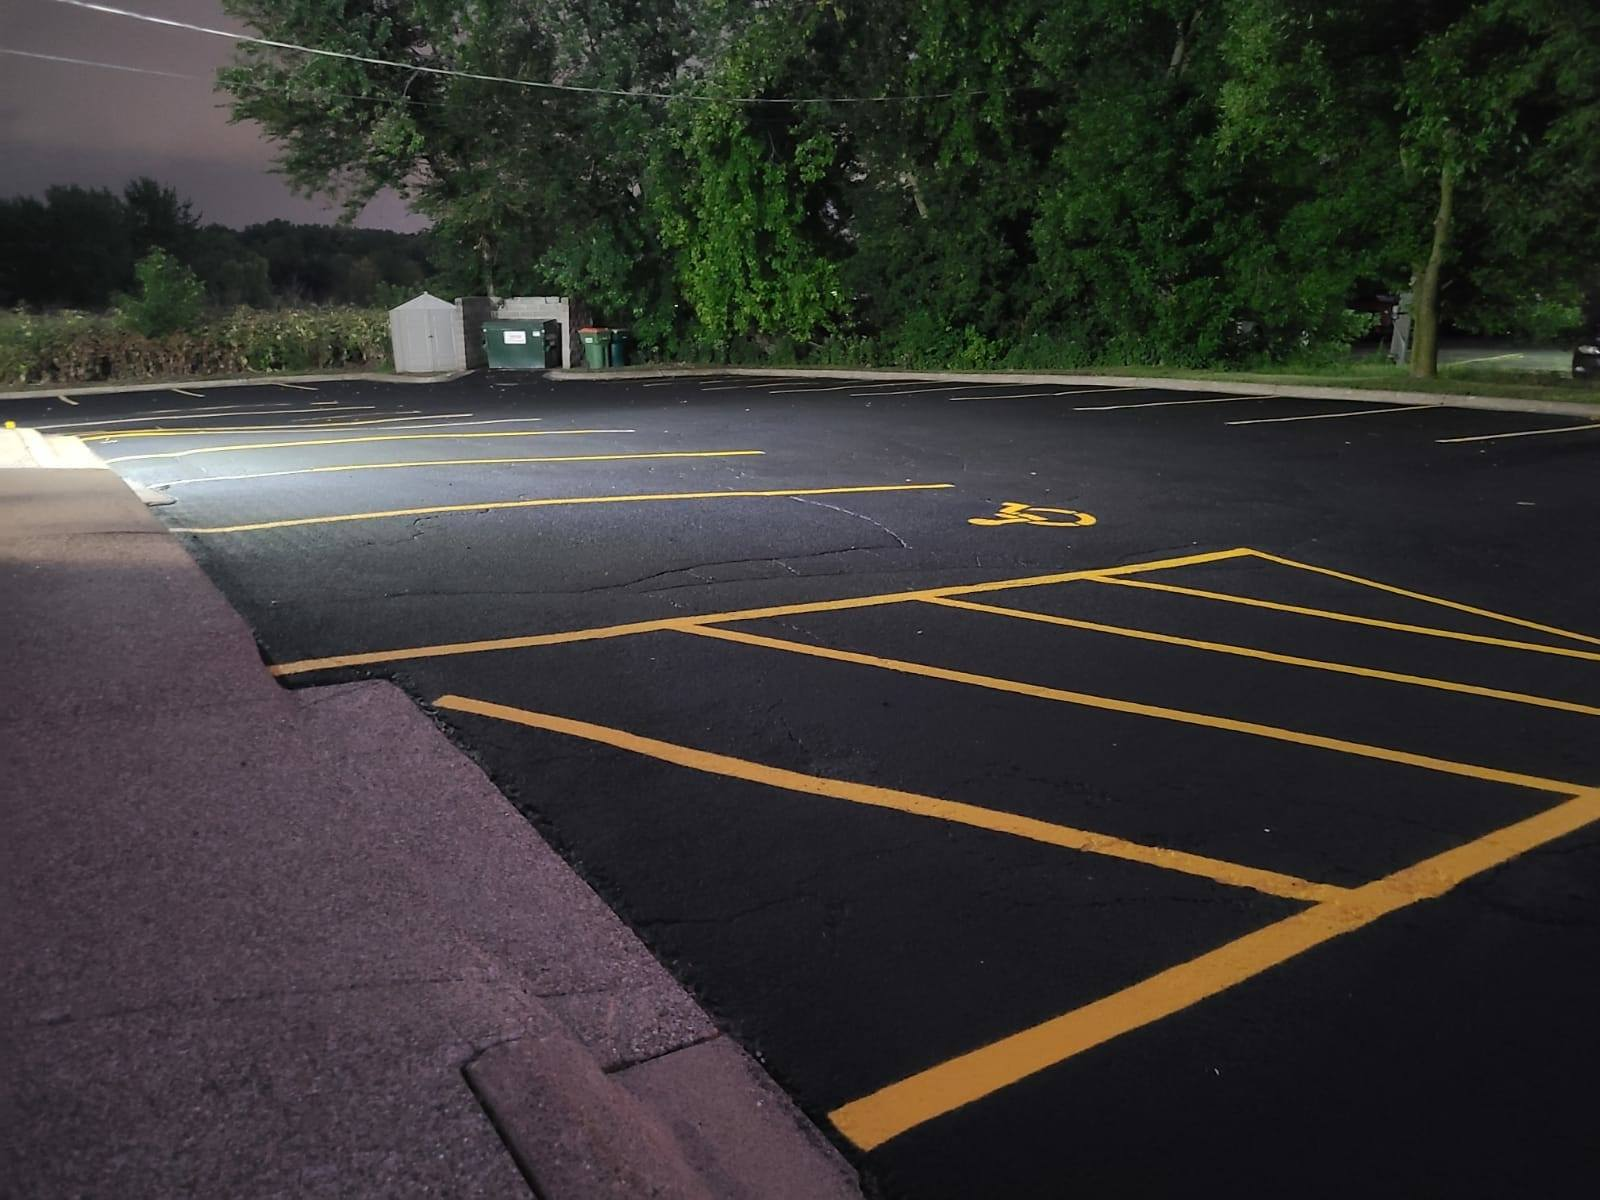 Maintaining a parking lot properly is essential for safety